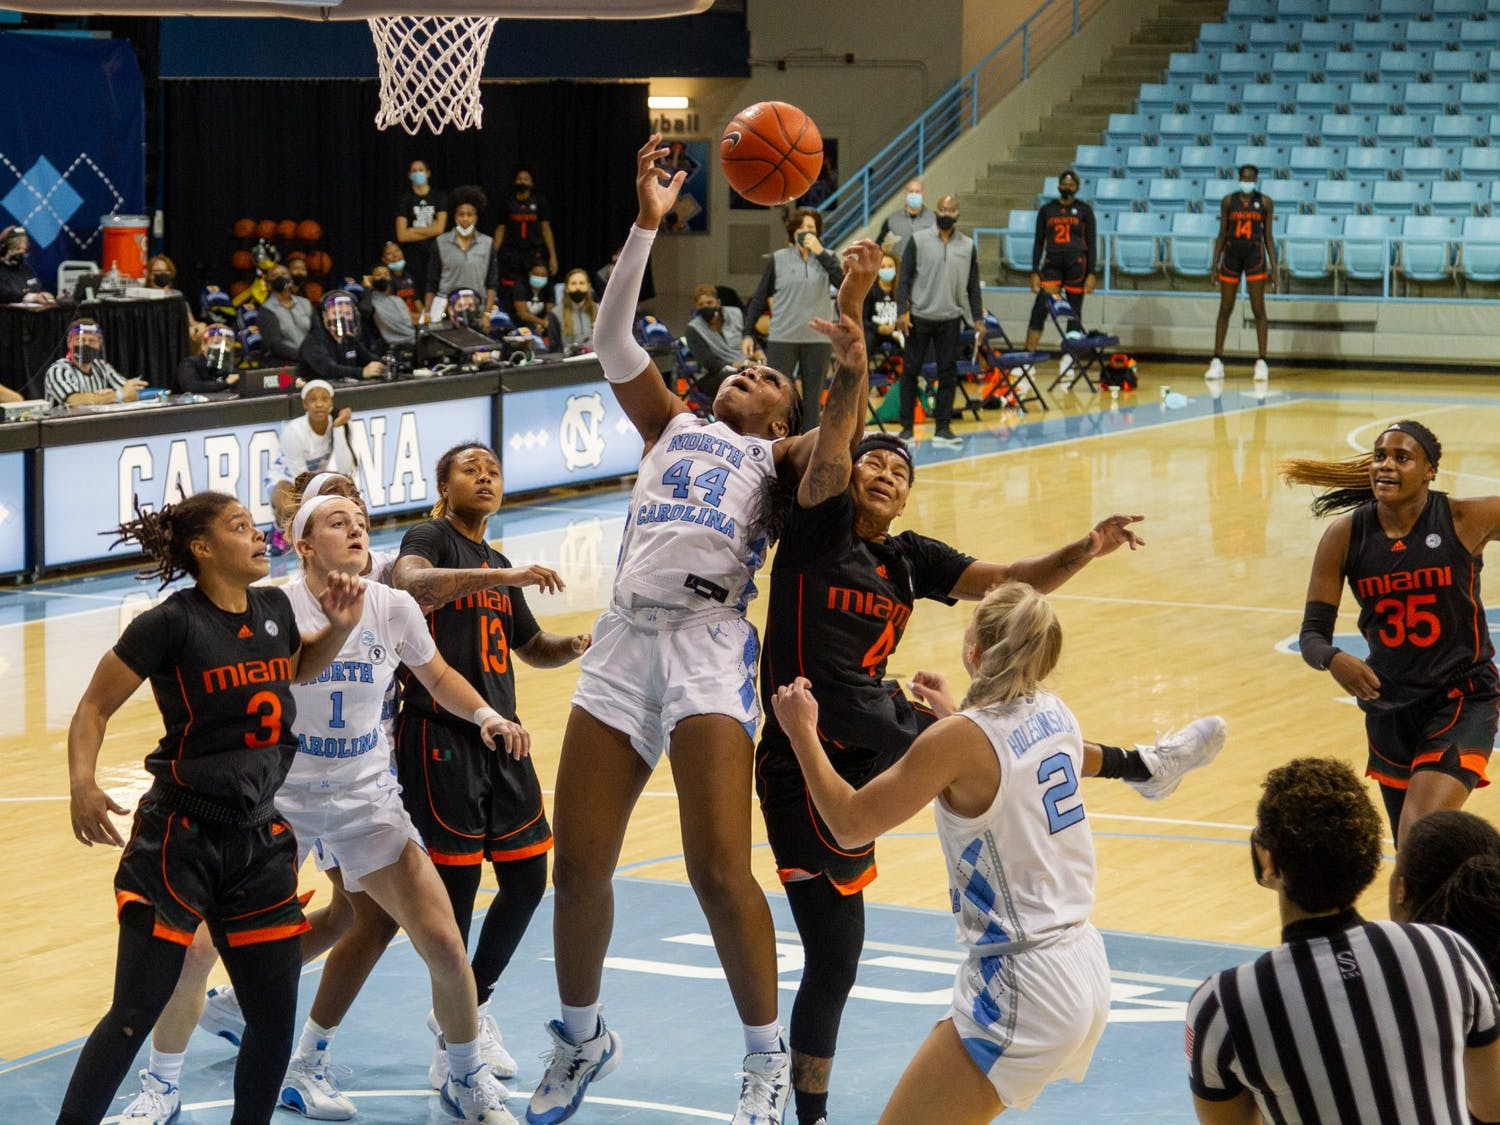 UNC senior center Janelle Bailey (44) shoots the ball at the game against Miami at Carmichael Arena on Sunday, Jan. 10, 2021. UNC fell to Miami 69-59.